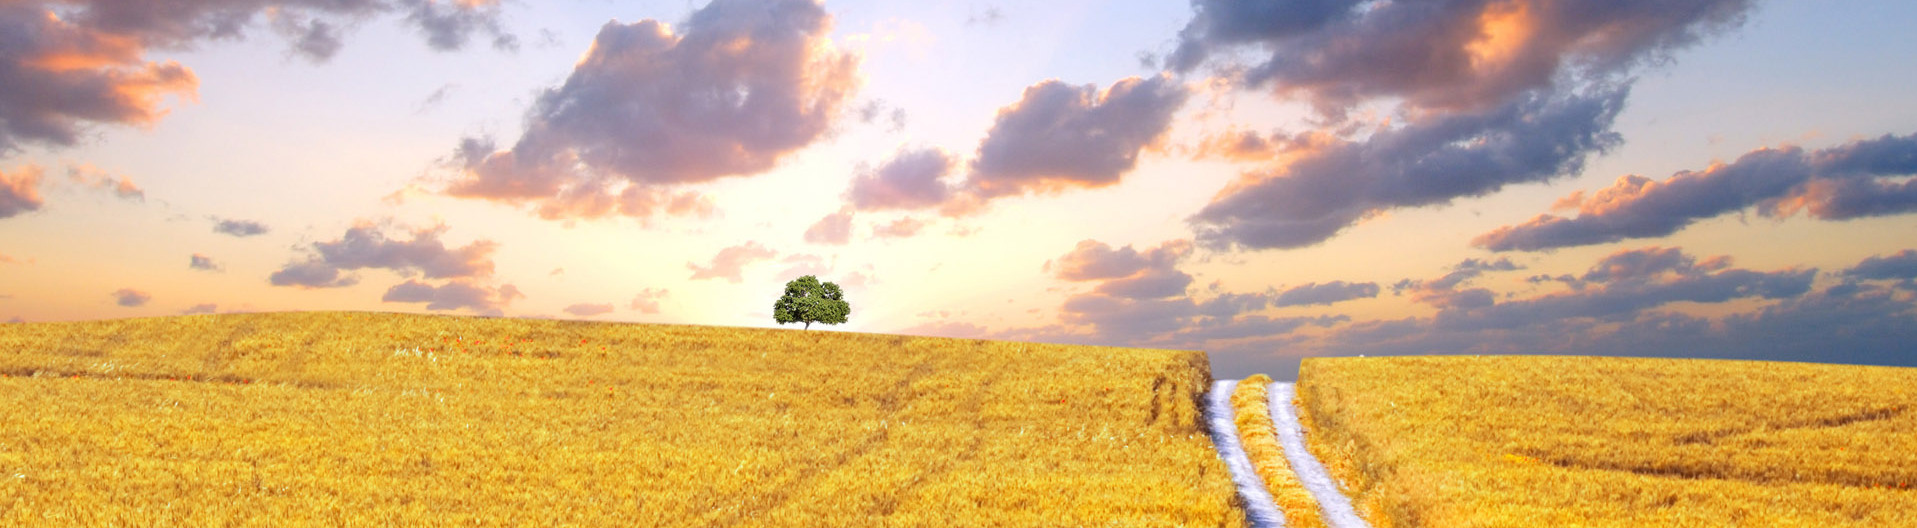 FreeGreatPicture.com-7351-hd-wheat-crop-material-header